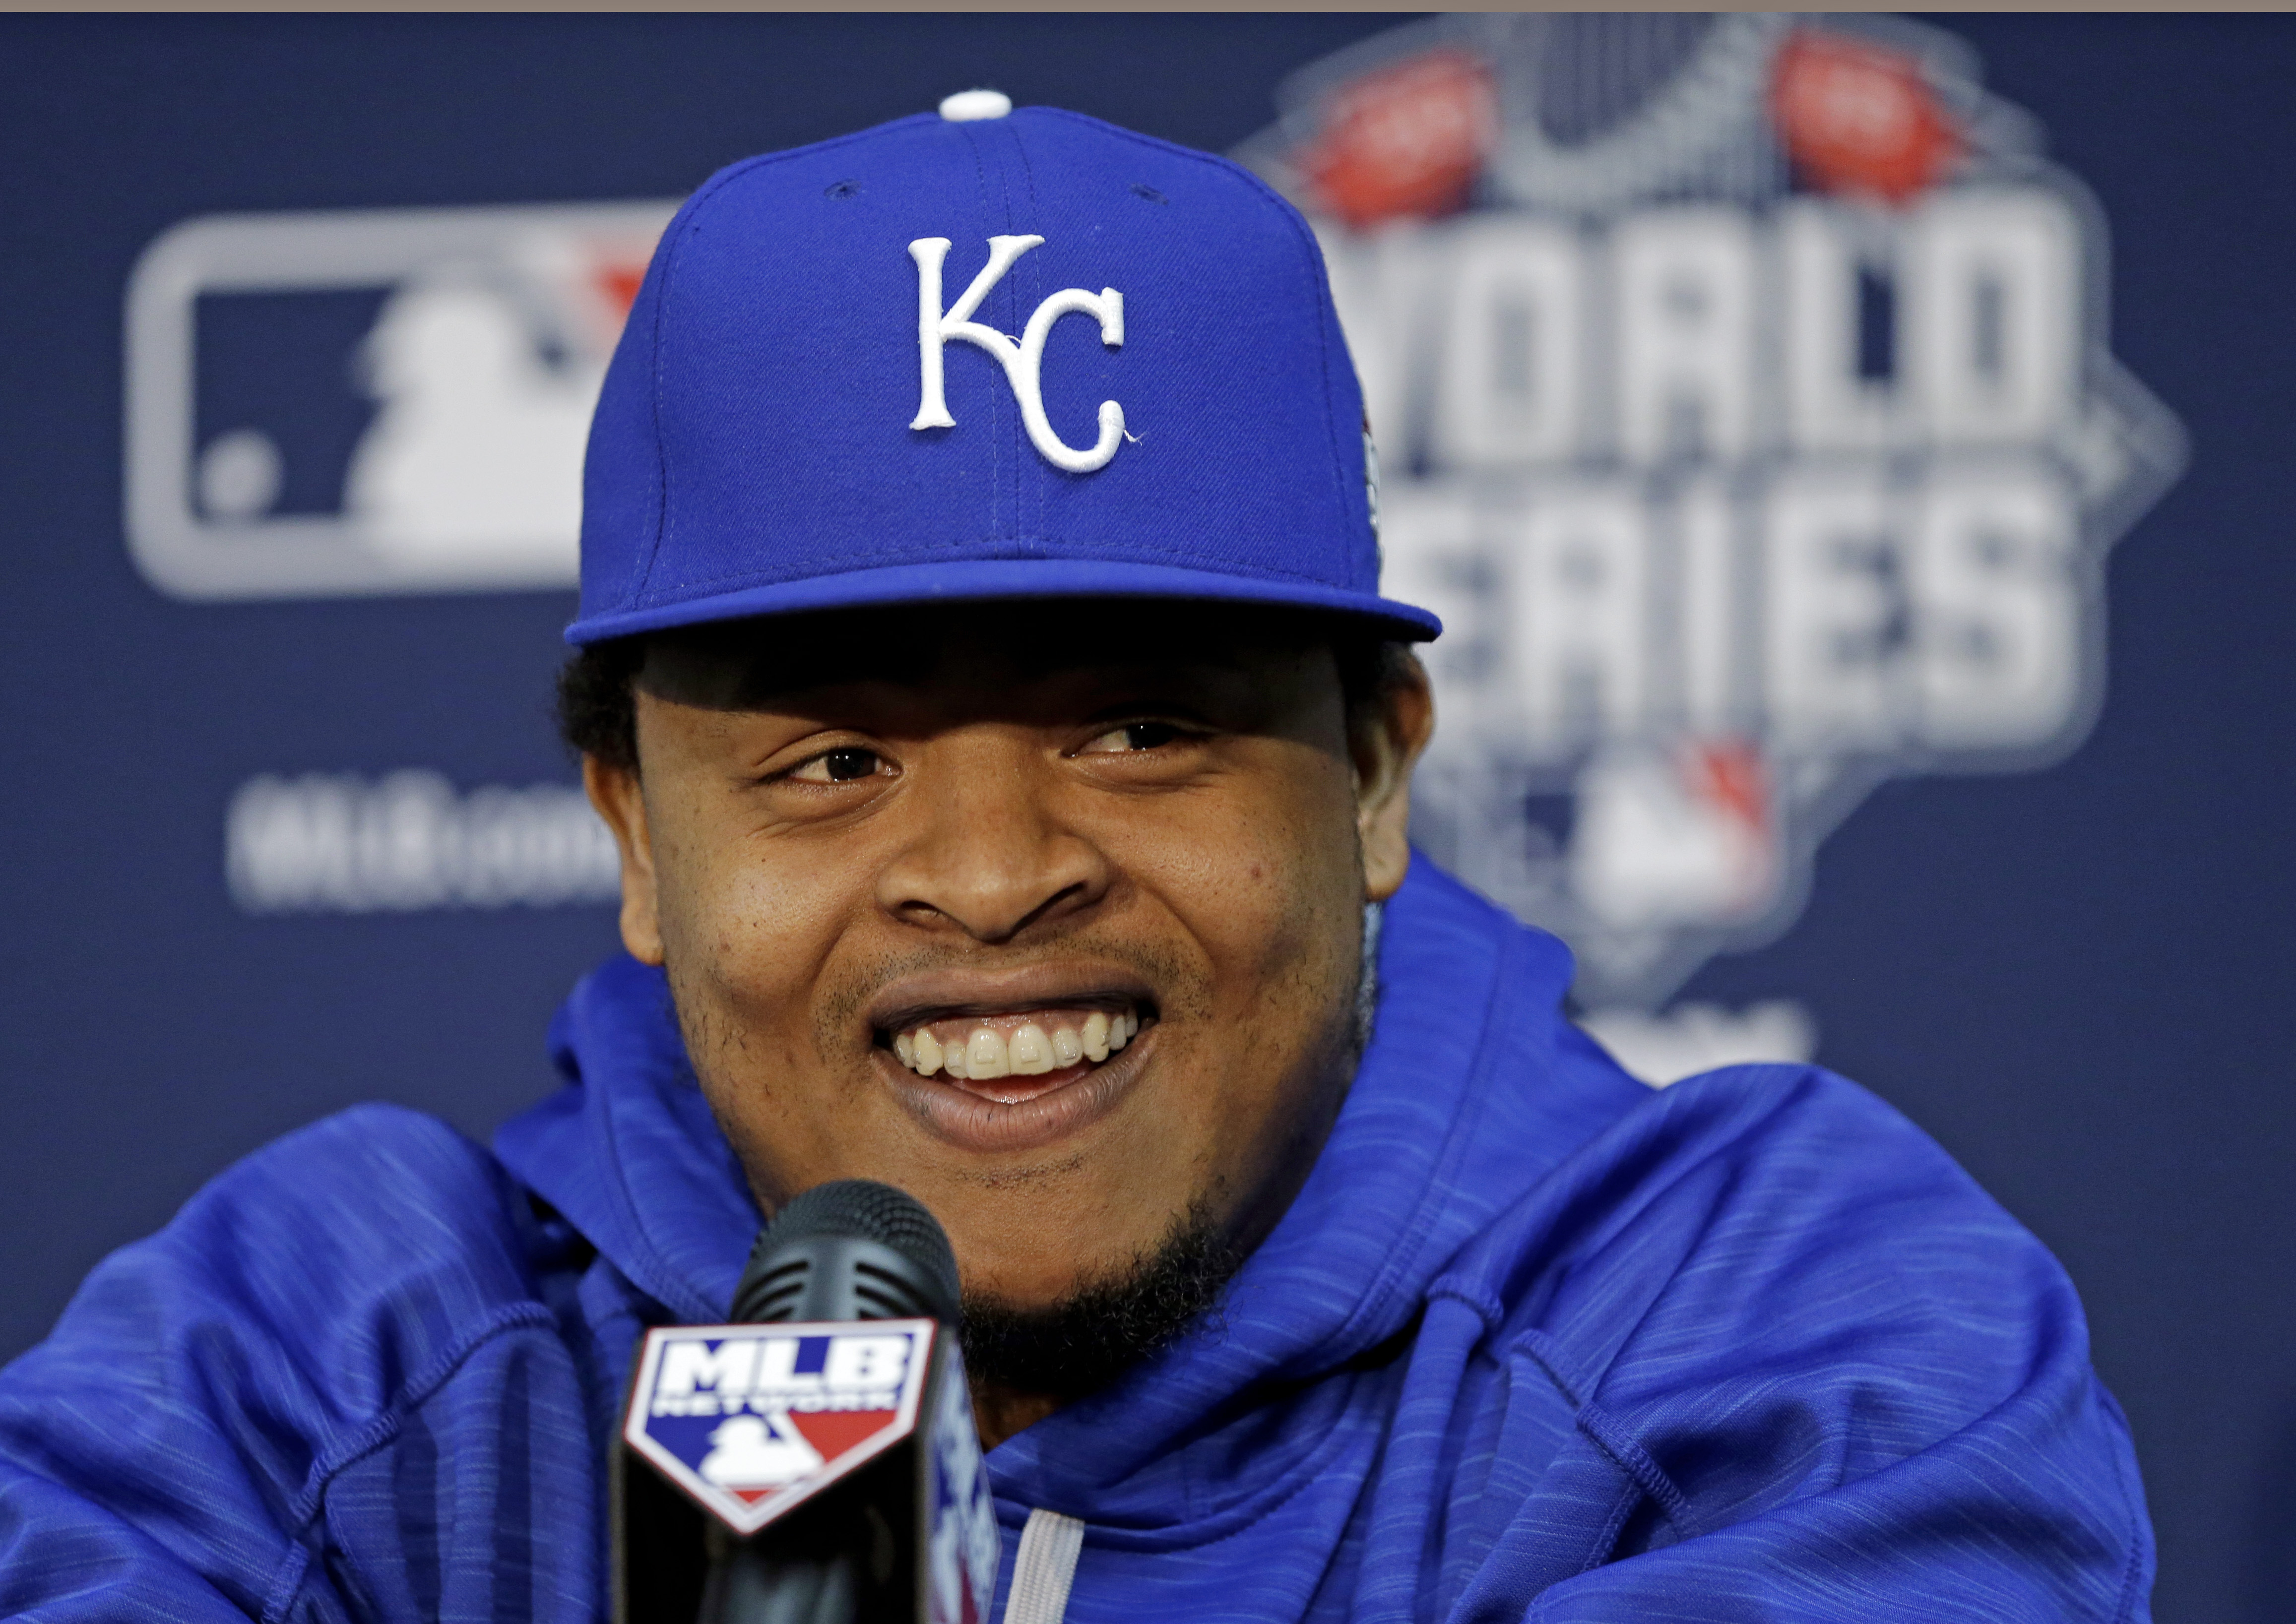 Kansas City Royals starting pitcher Edinson Volquez talks during media day for the Major League Baseball World Series against the New York Mets Monday, Oct. 26, 2015, in Kansas City, Mo. (AP Photo/David J. Phillip)